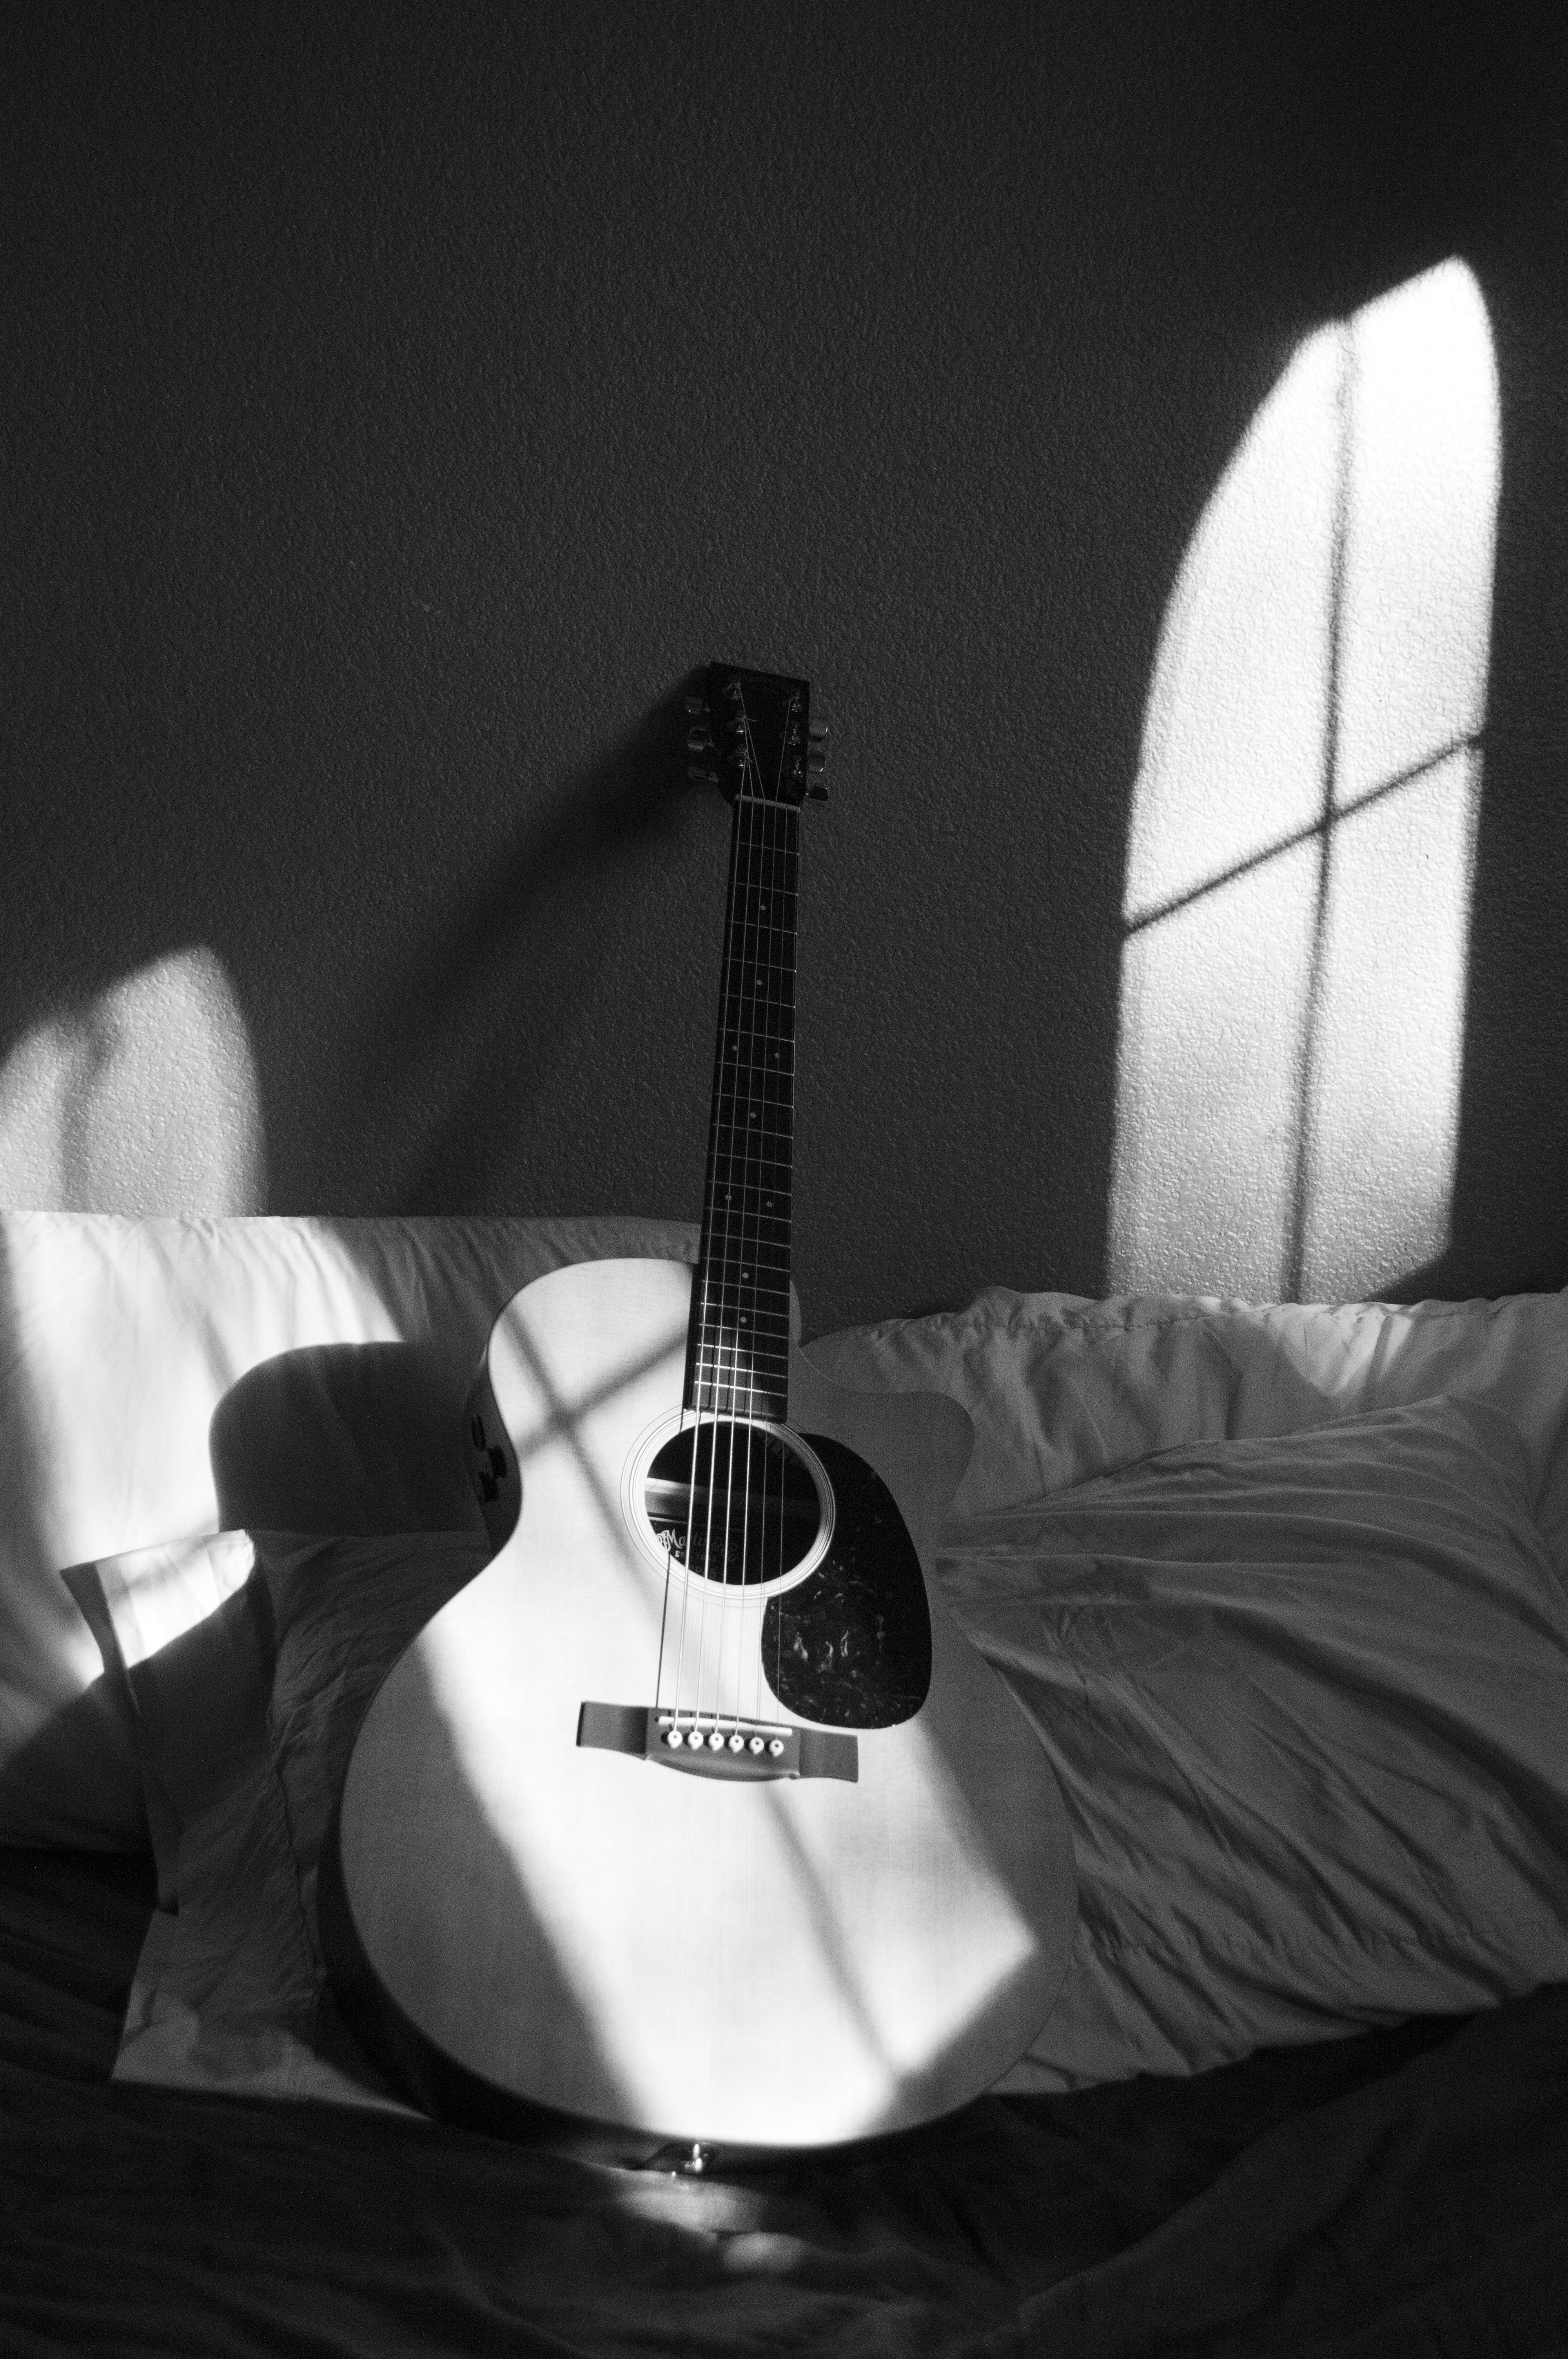 White Acoustic Guitar on Grey and White Textile